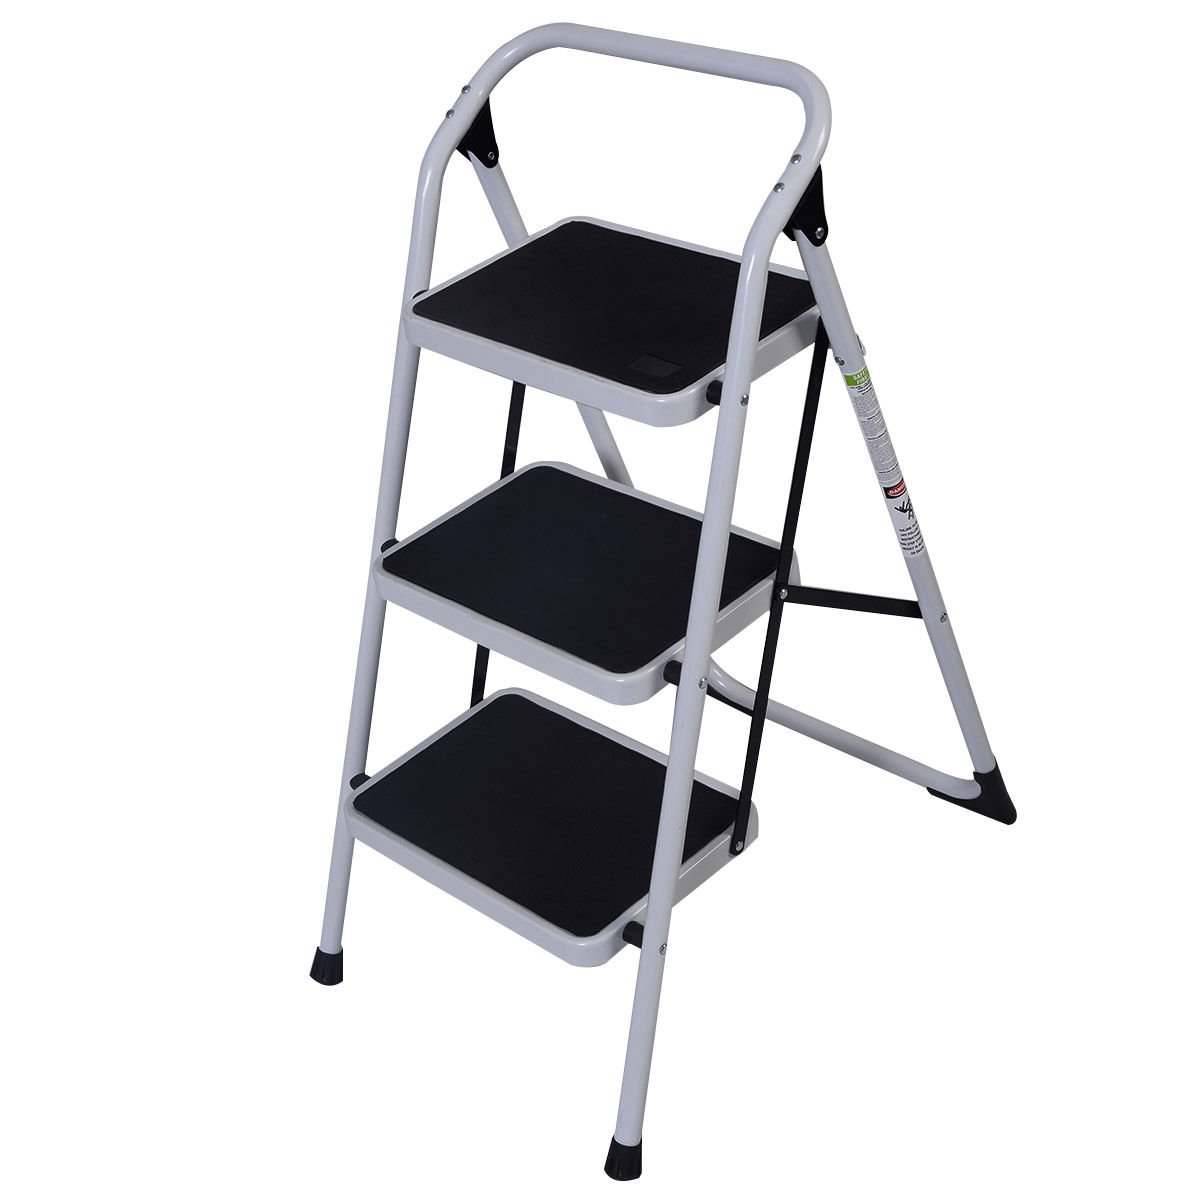 onestops8 Protable 3 Step Ladder Folding Non Slip Safety Tread Heavy Duty Industrial Home